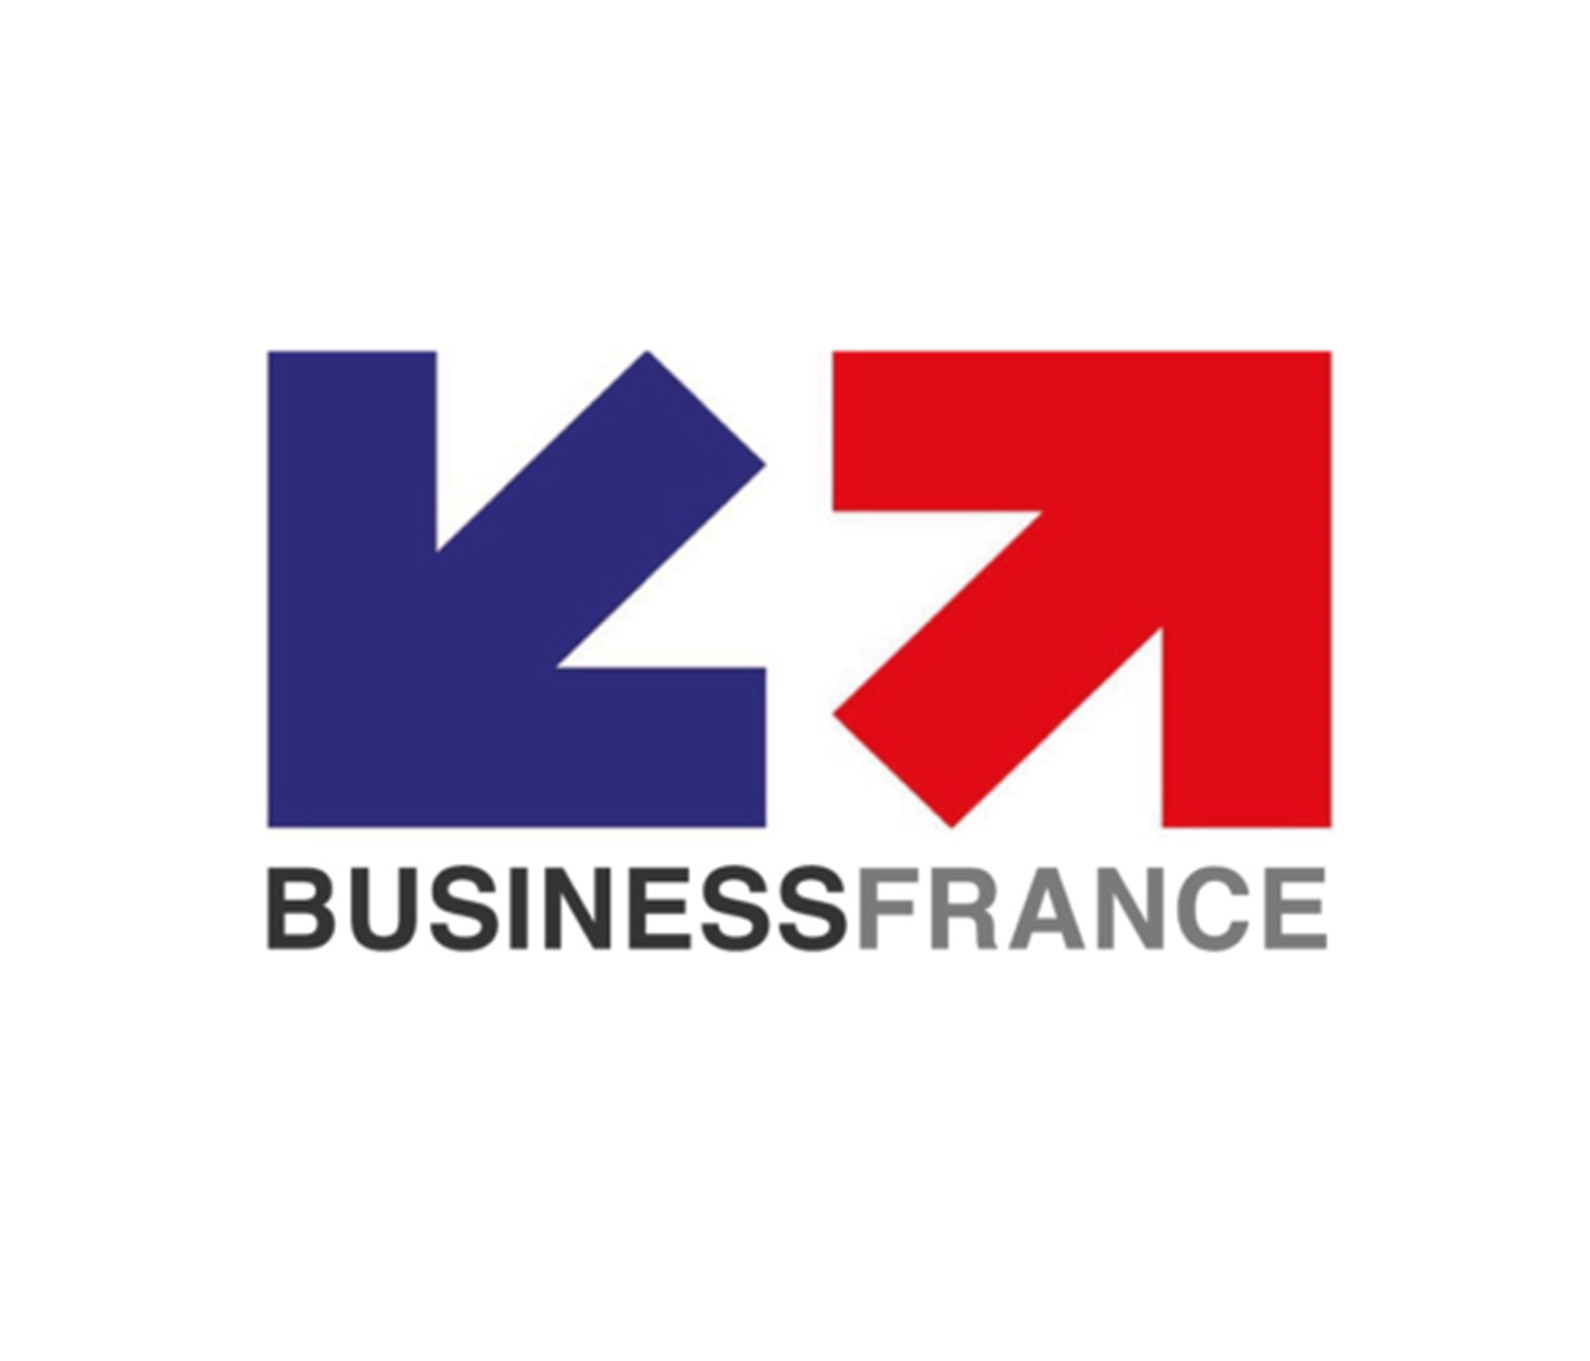 16BusinessFrance